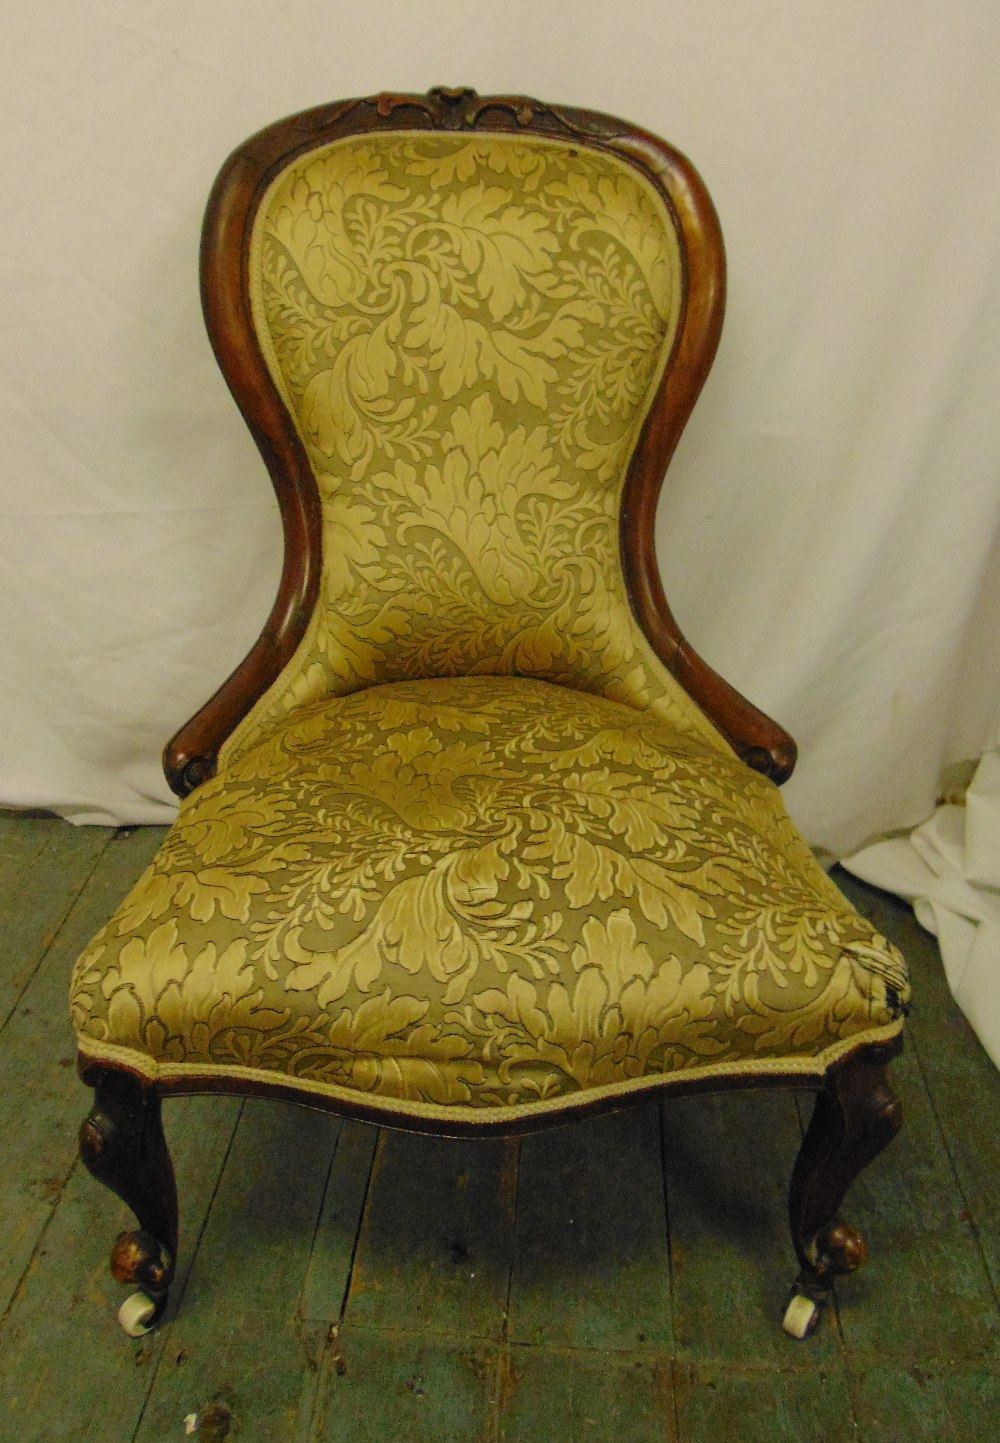 Lot 35 - A Victorian mahogany upholstered balloon back chair on scroll legs with original castors